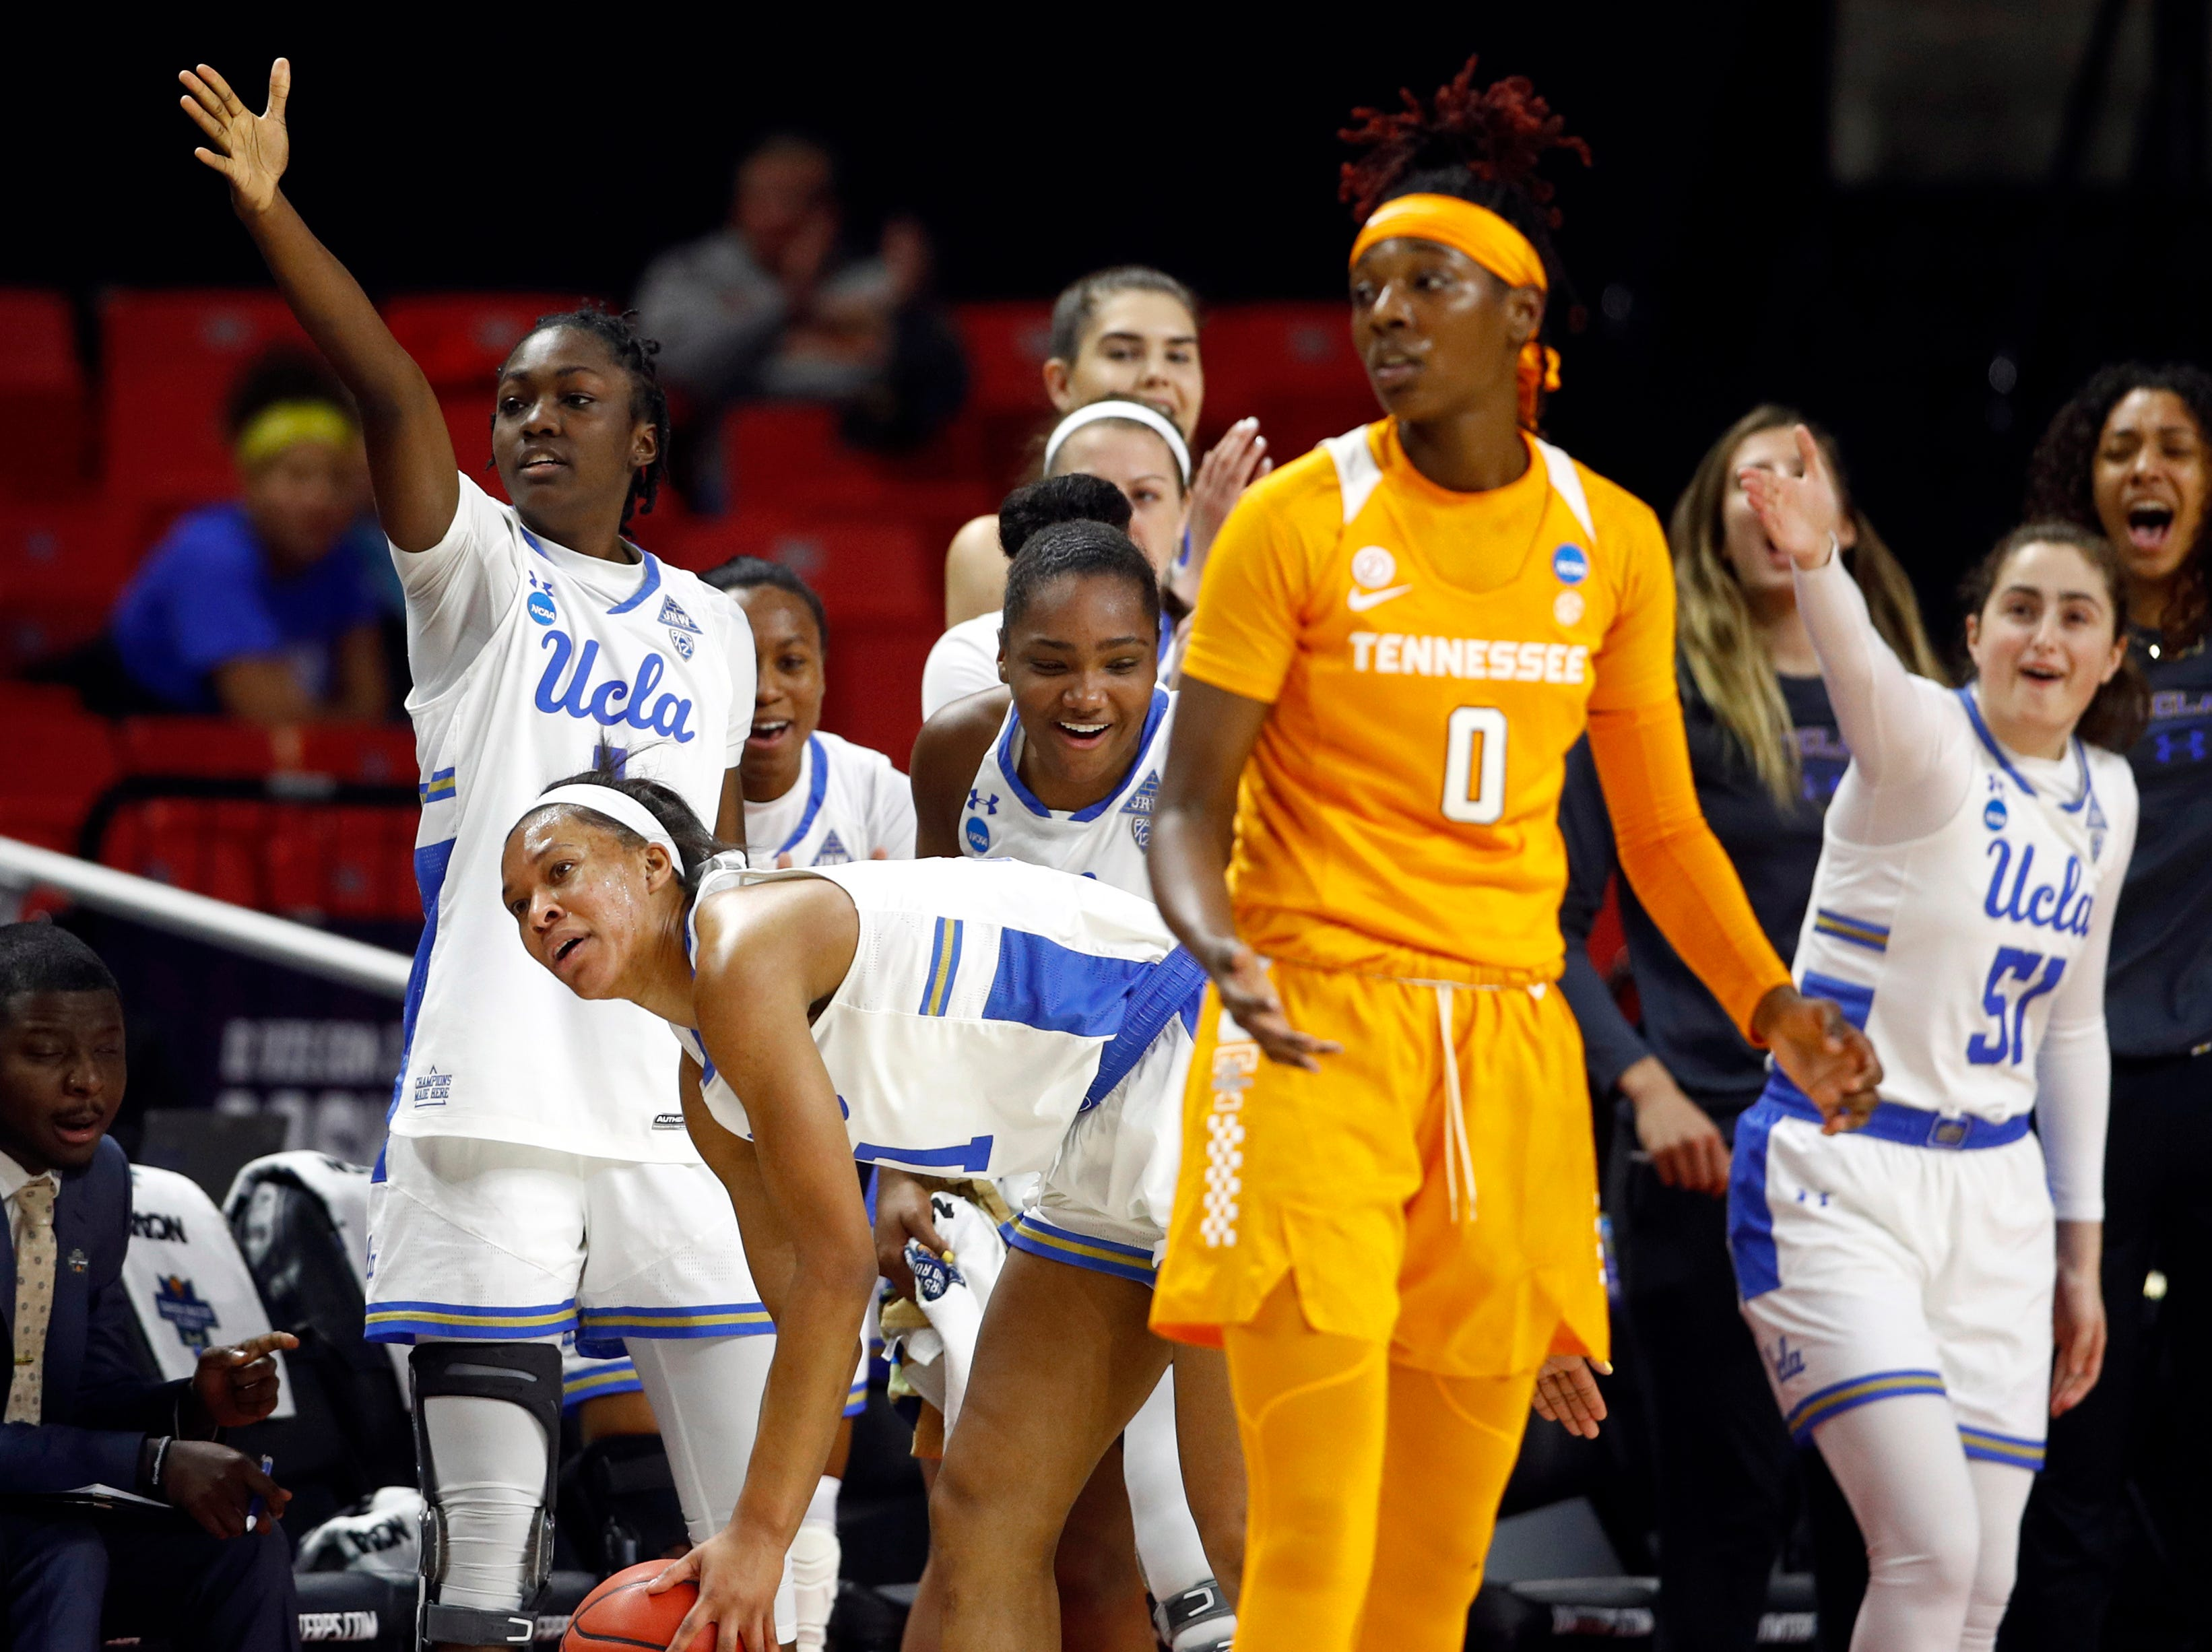 UCLA players celebrate after Tennessee guard Rennia Davis (0) was unable to keep the ball in bounds and turned over possession in the first half of a first-round game in the NCAA women's college basketball tournament, Saturday, March 23, 2019, in College Park, Md.